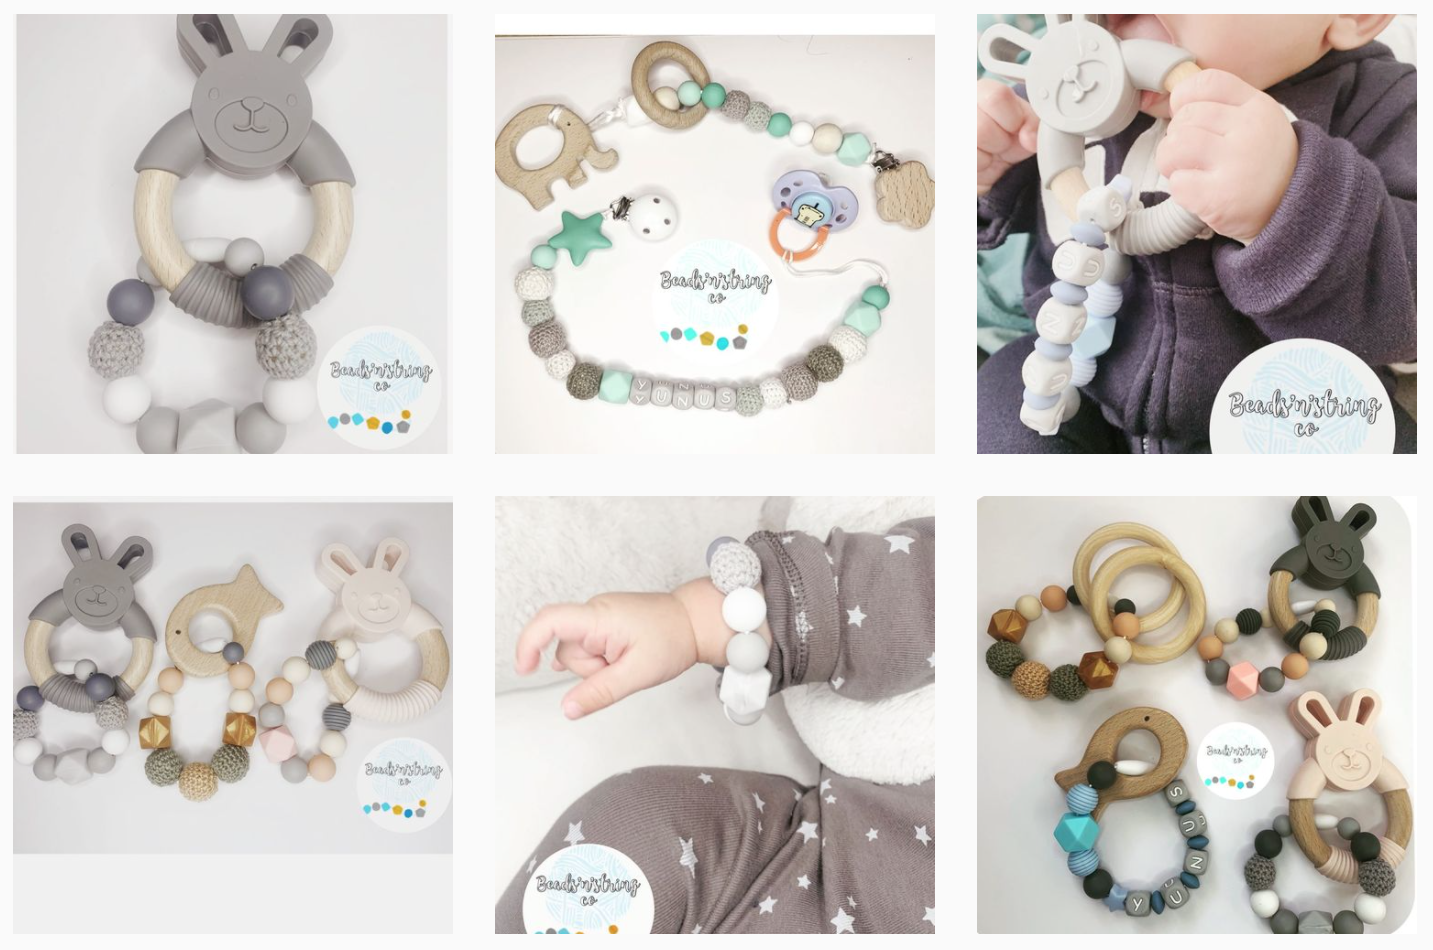 Shop small this Christmas: Baby and toddler gifts.